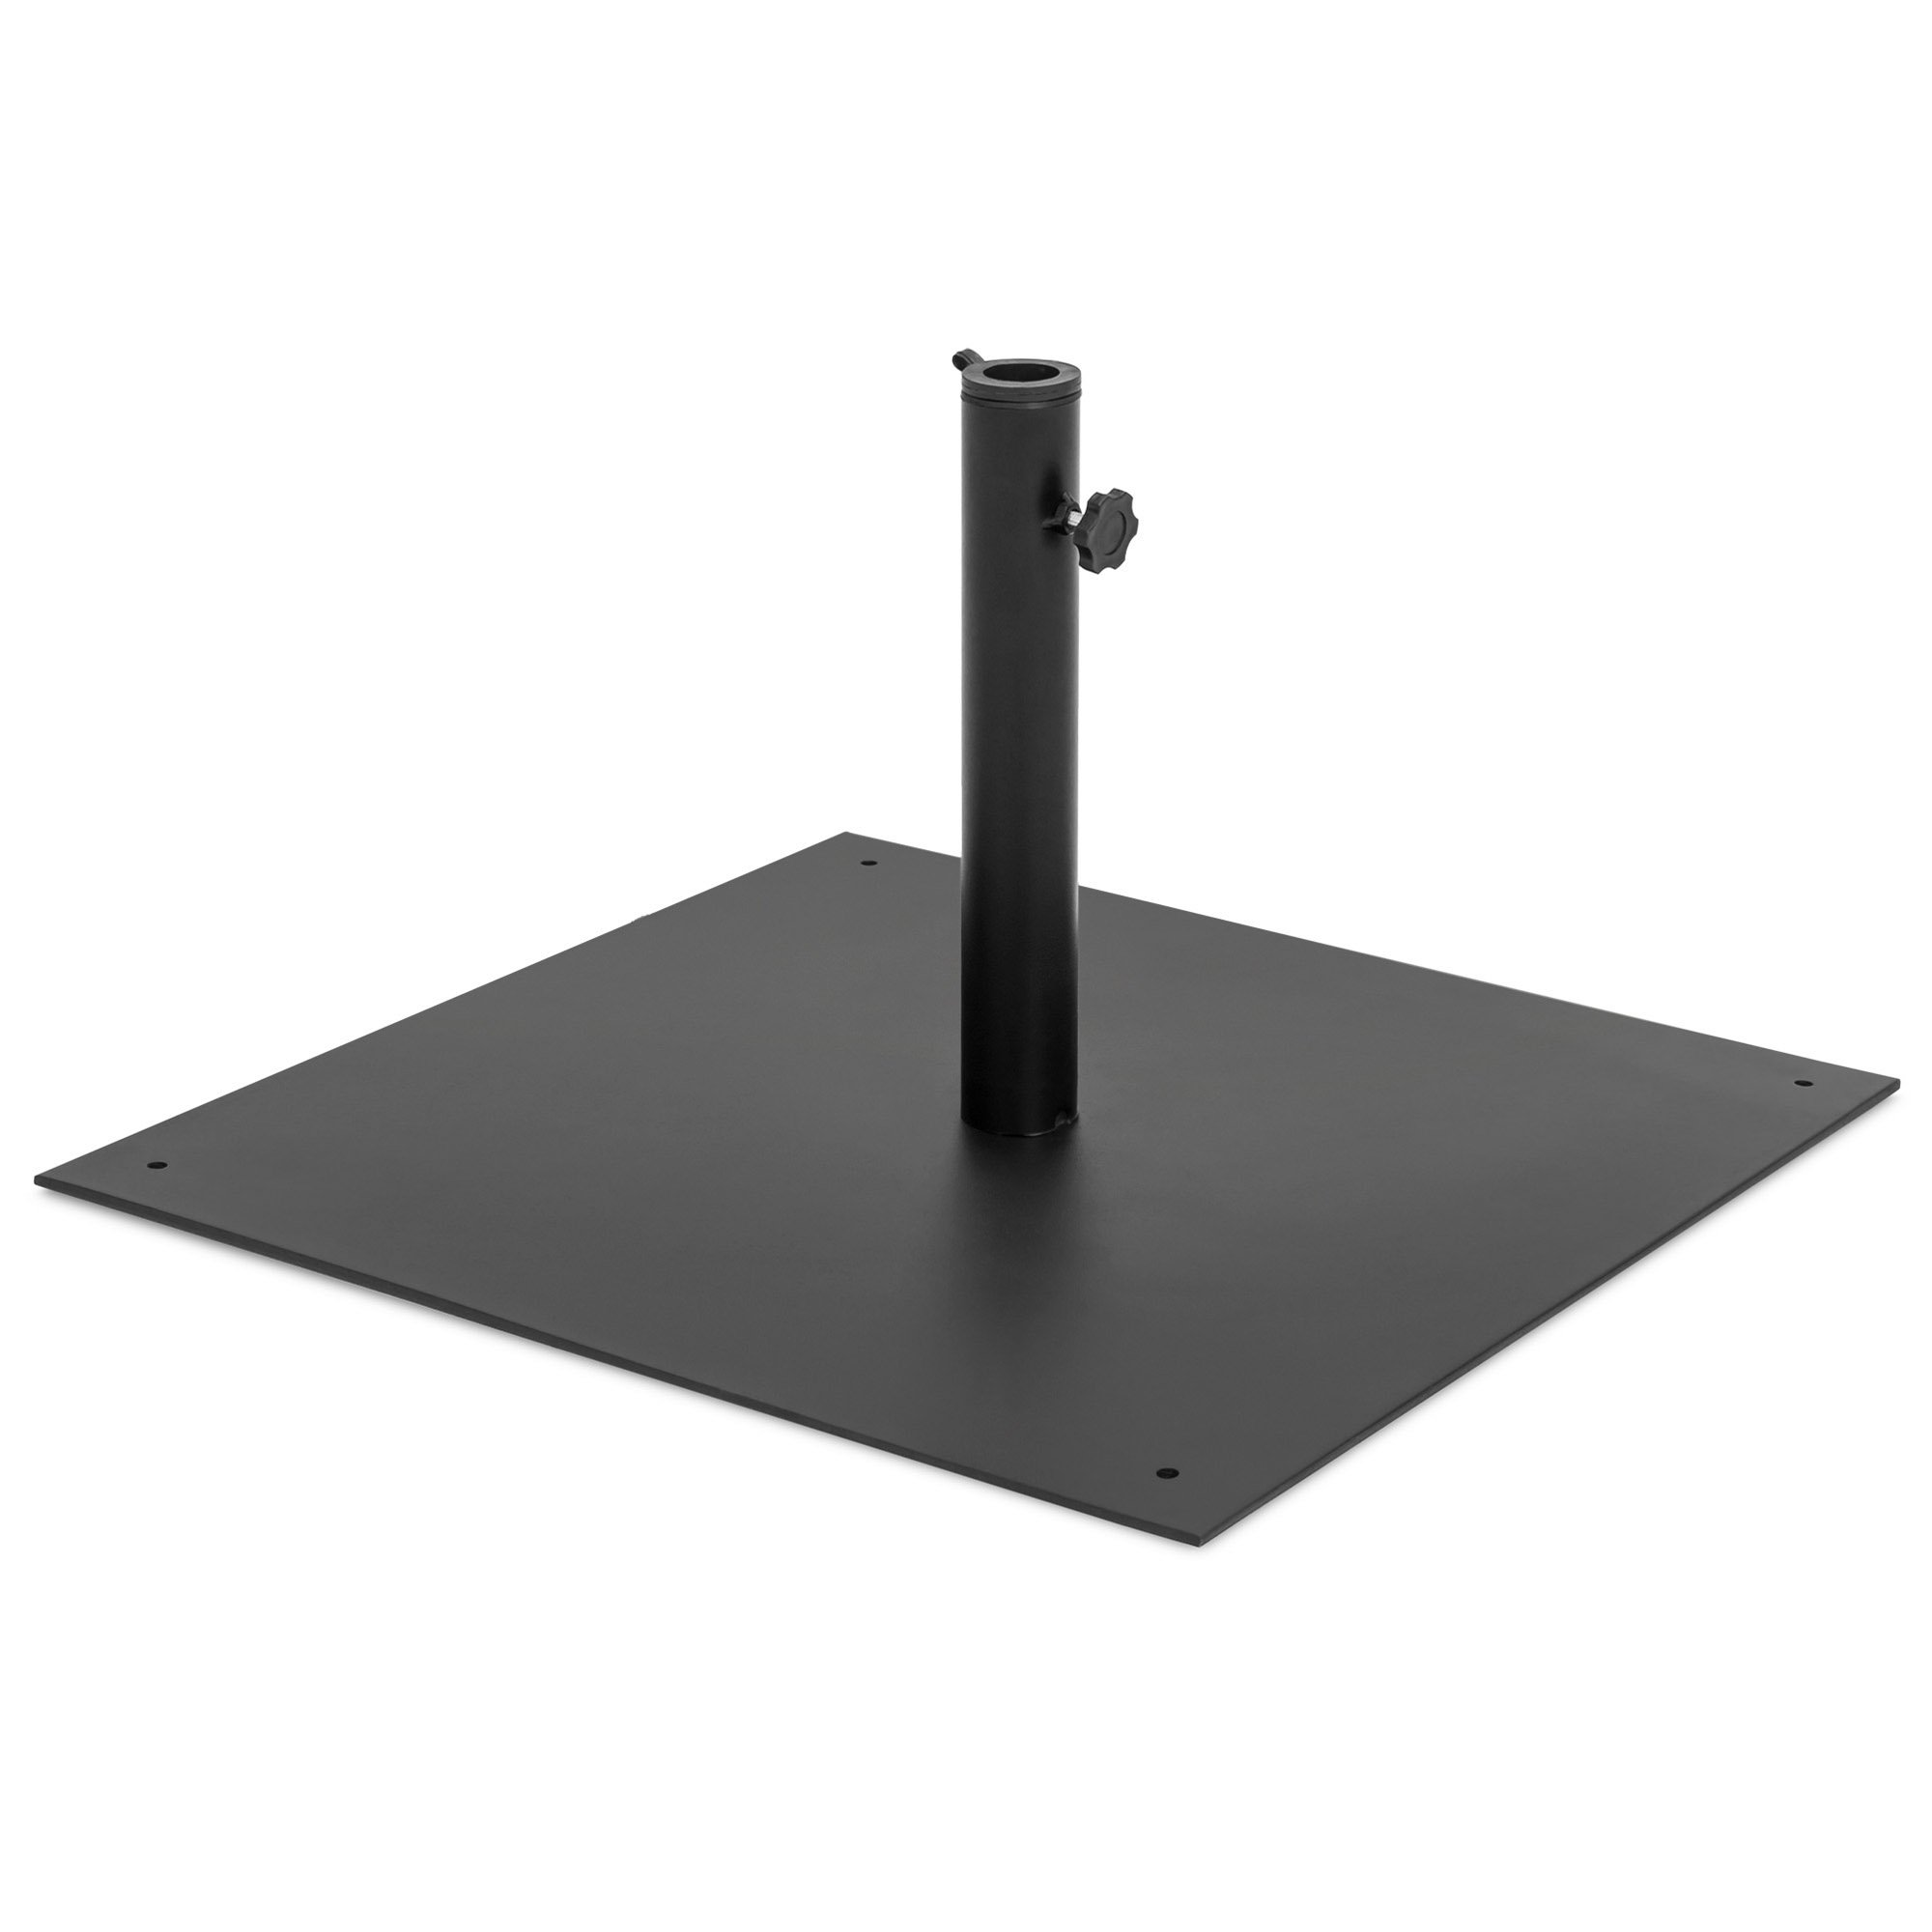 Best Choice Products 38.5-Pound Steel Square Patio Umbrella Base Stand with Tightening Knob and Anchor Holes, Black by Best Choice Products